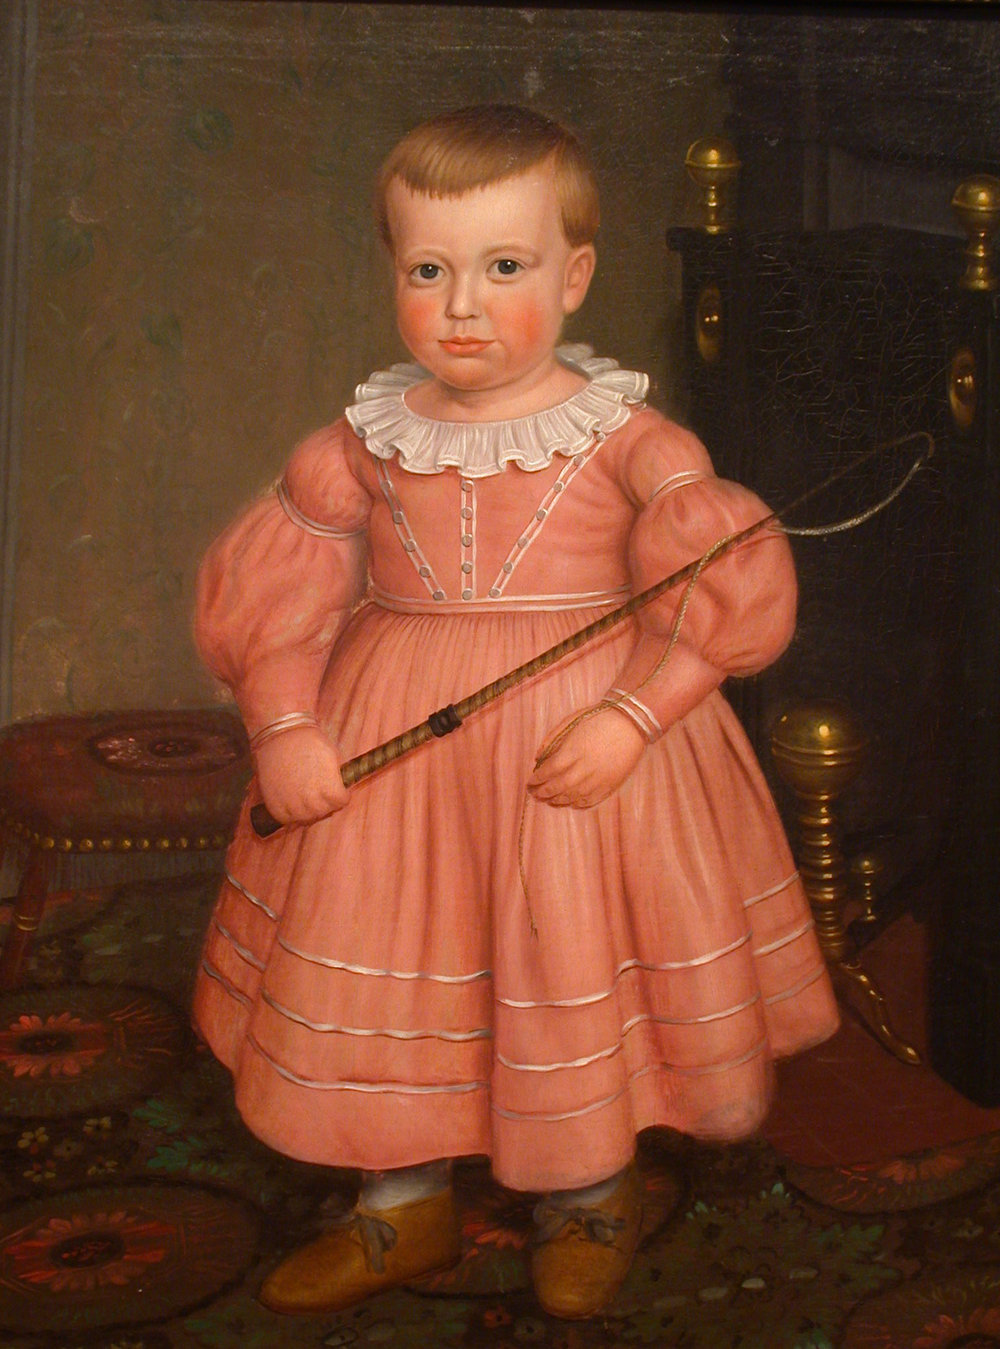 American_School,_Young_Boy_with_Whip,_ca._1840.jpg